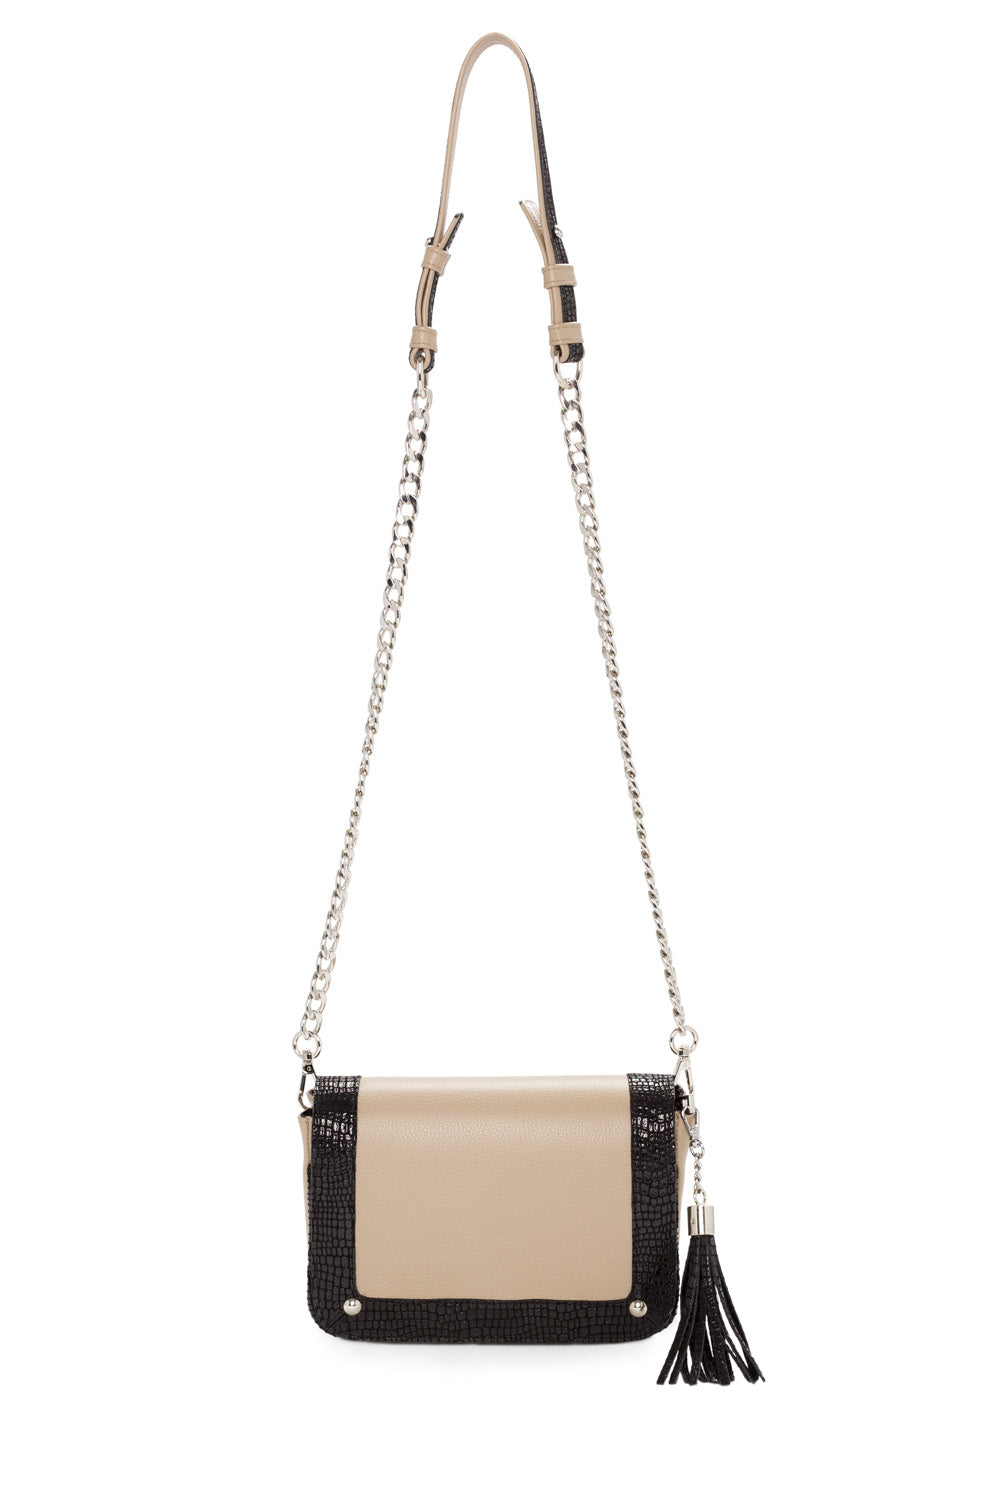 'Amber' Small Shoulder Bag in Taupe And Black Leather | Mel Boteri | Front View With Chain Strap